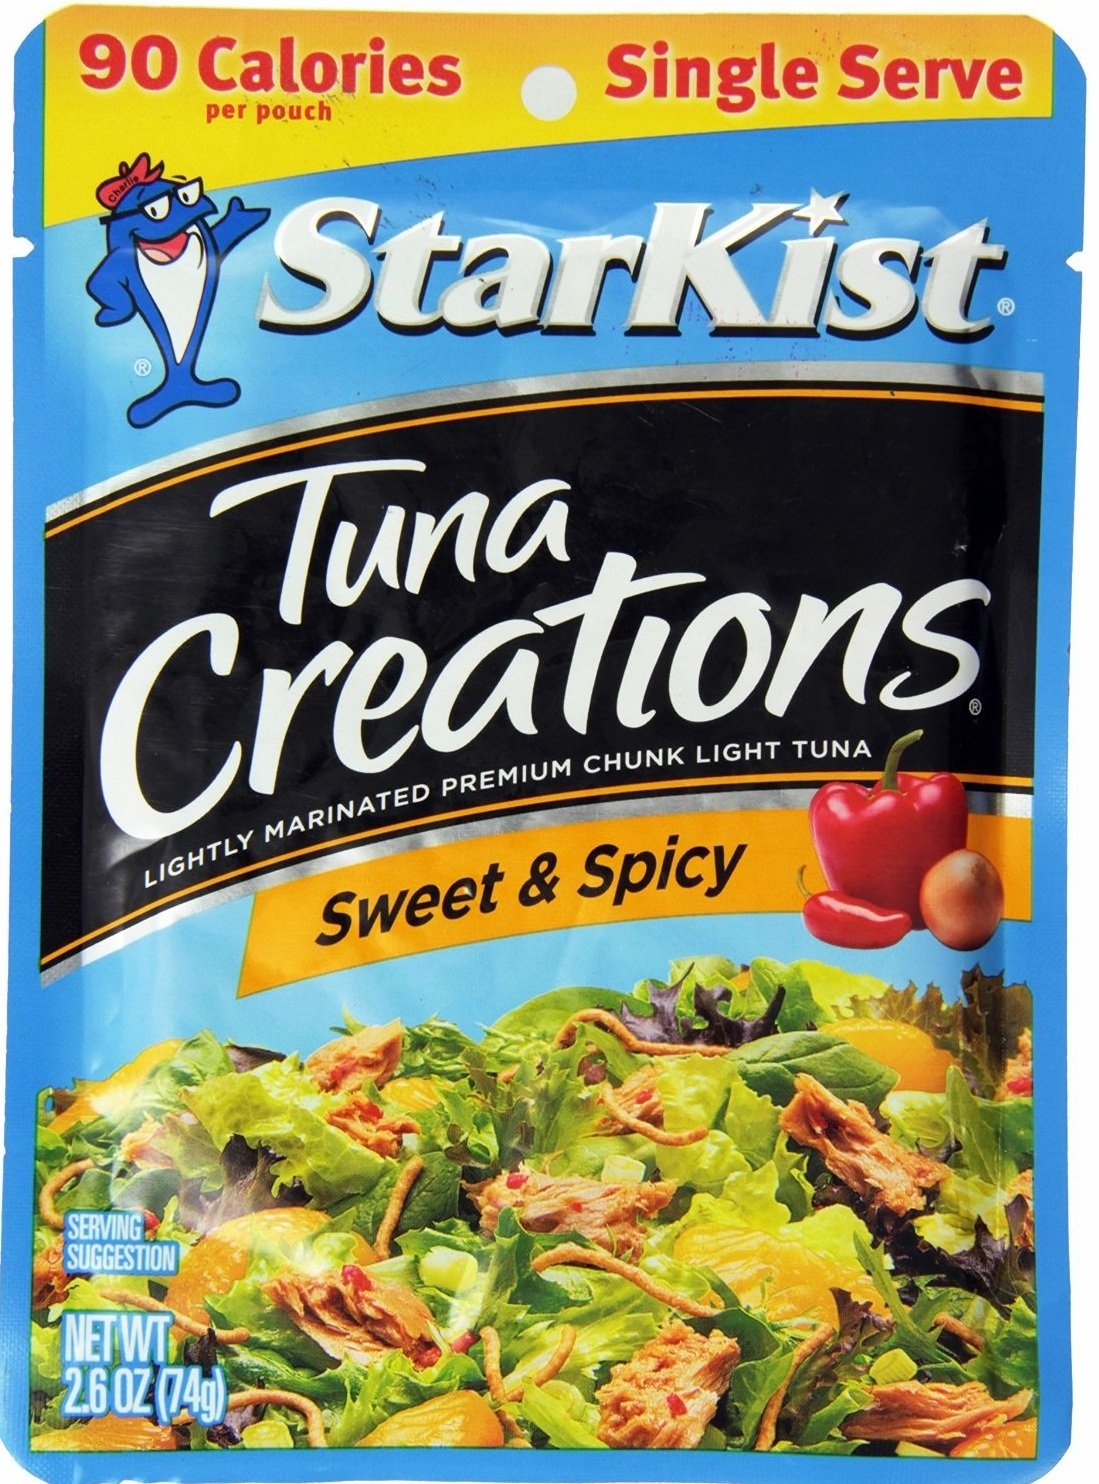 Starkist Tuna Creations, Sweet & Spicy, Single Serve 2.6-Ounce Pouch (Pack of 10) by StarKist